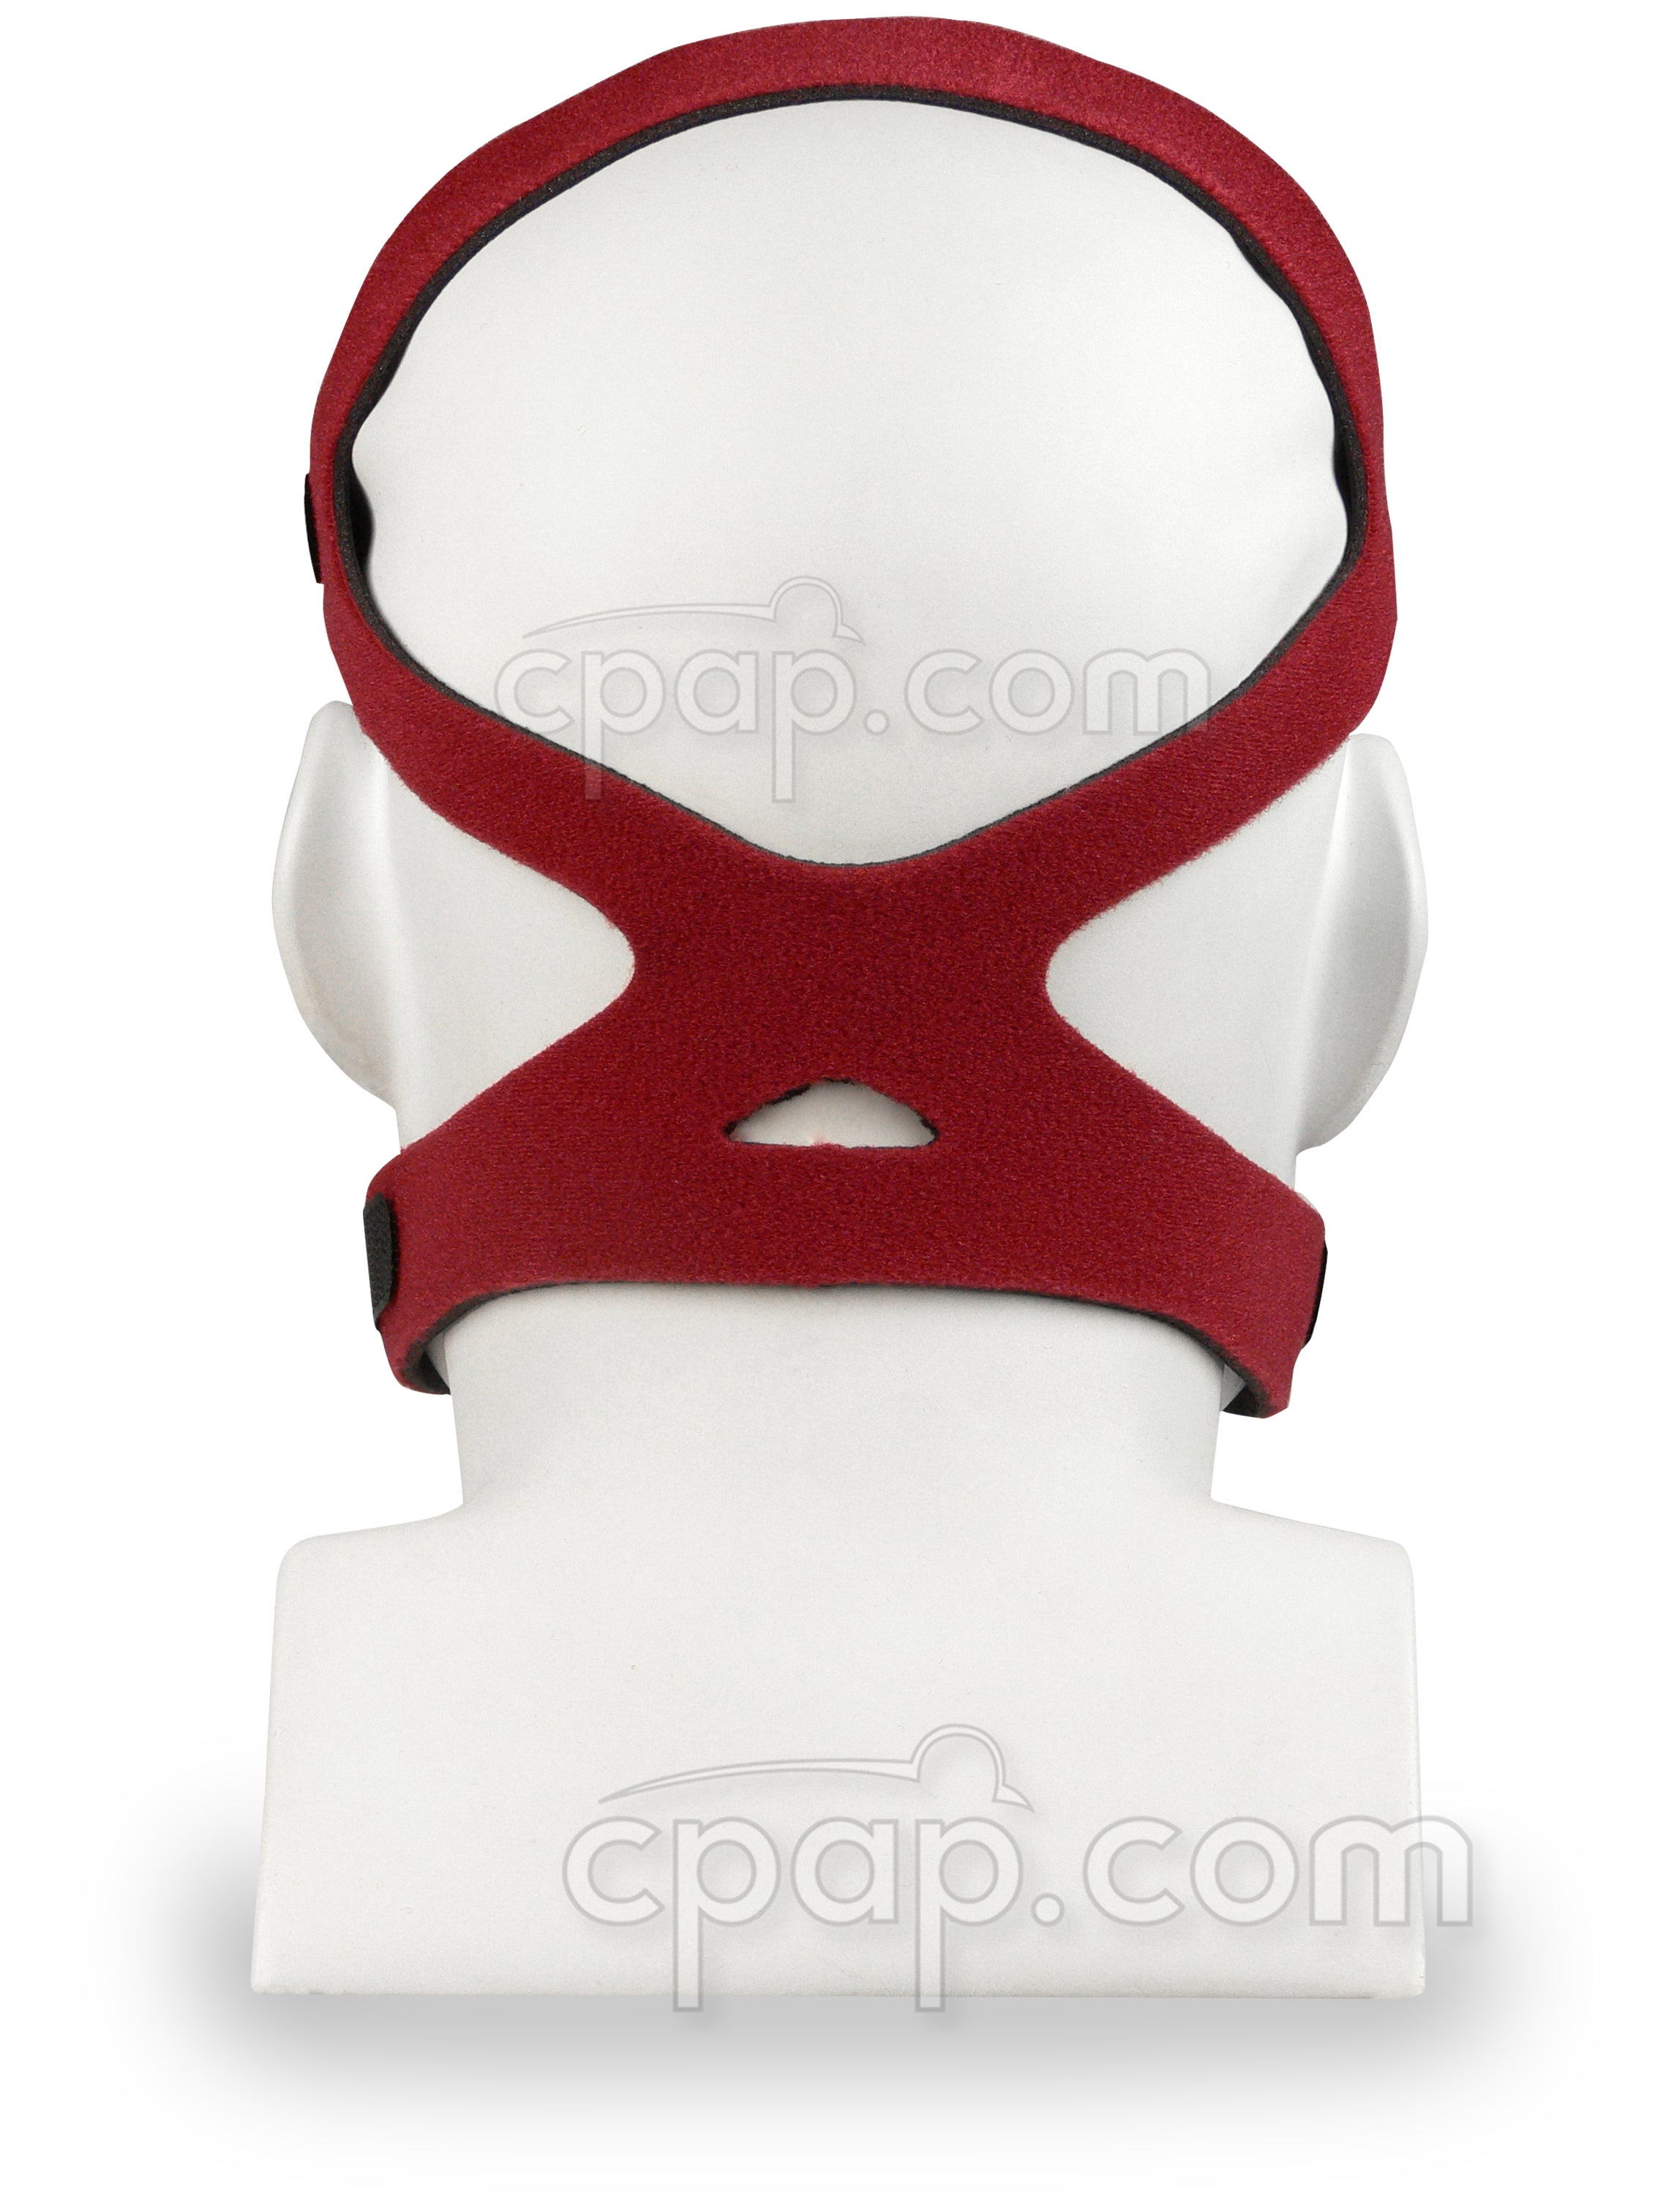 Universal 4-Point Headgear for Full Face CPAP Masks